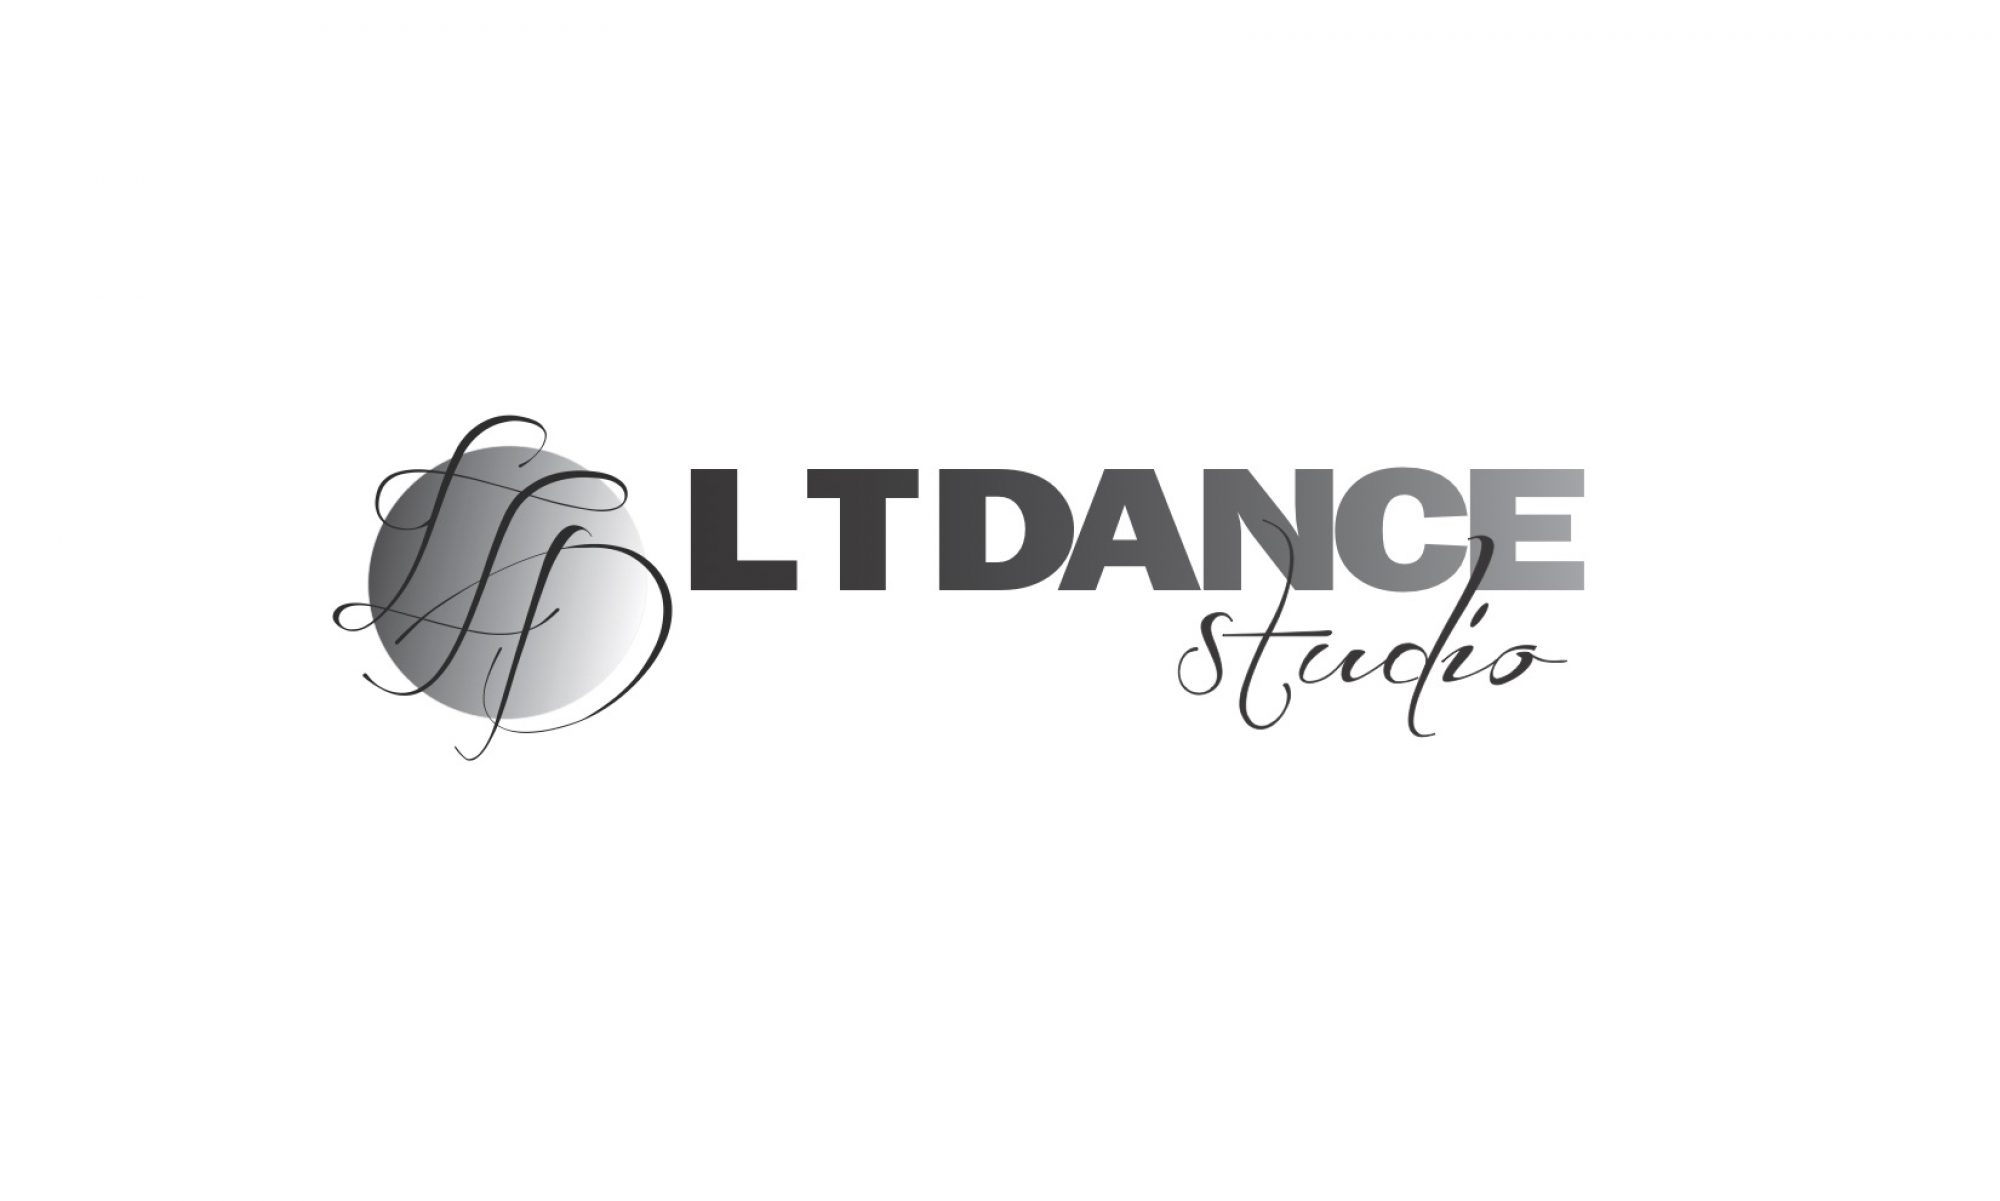 LT DANCE STUDIO